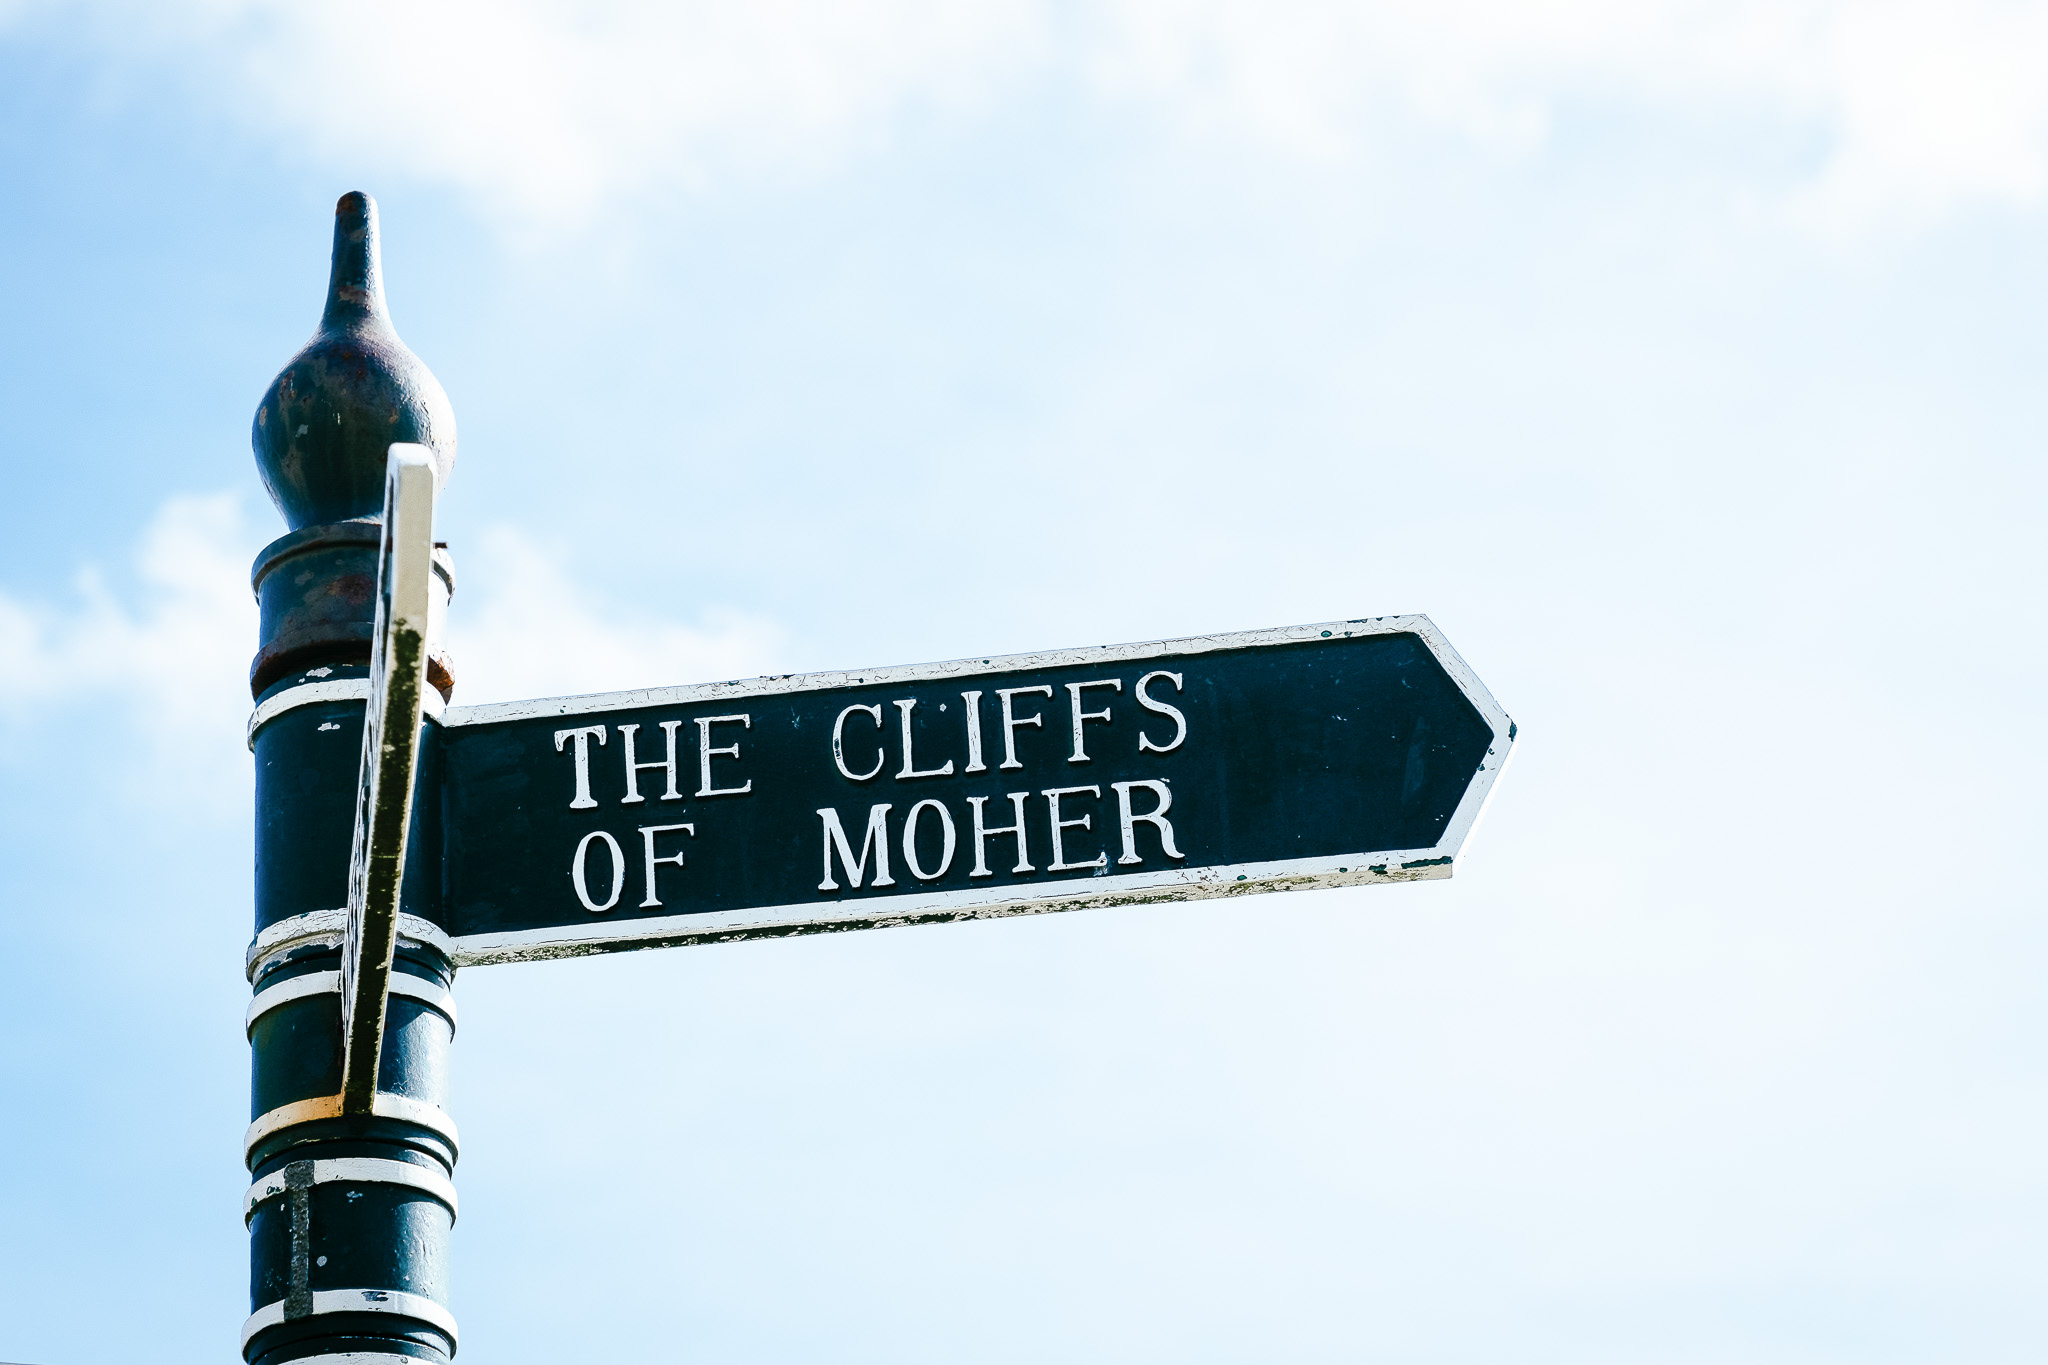 signpost at the Cliffs of Moher Ireland